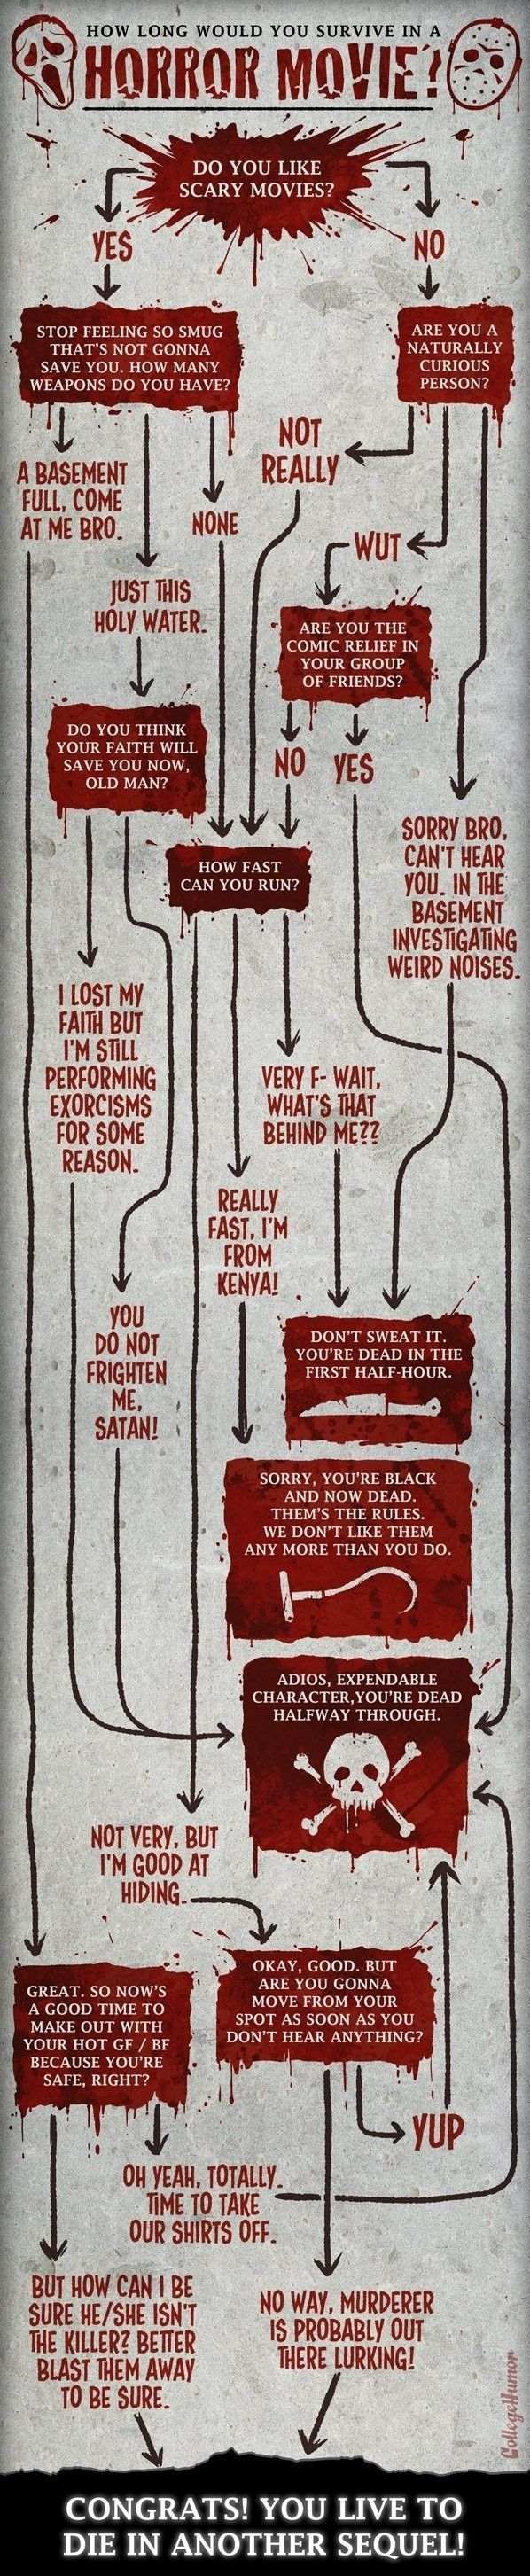 How to survive a horror movie: Laughing, Horror Movies, Awesome, Random, Funny Stuff, I Survival, Things, Long, Movie Infographic